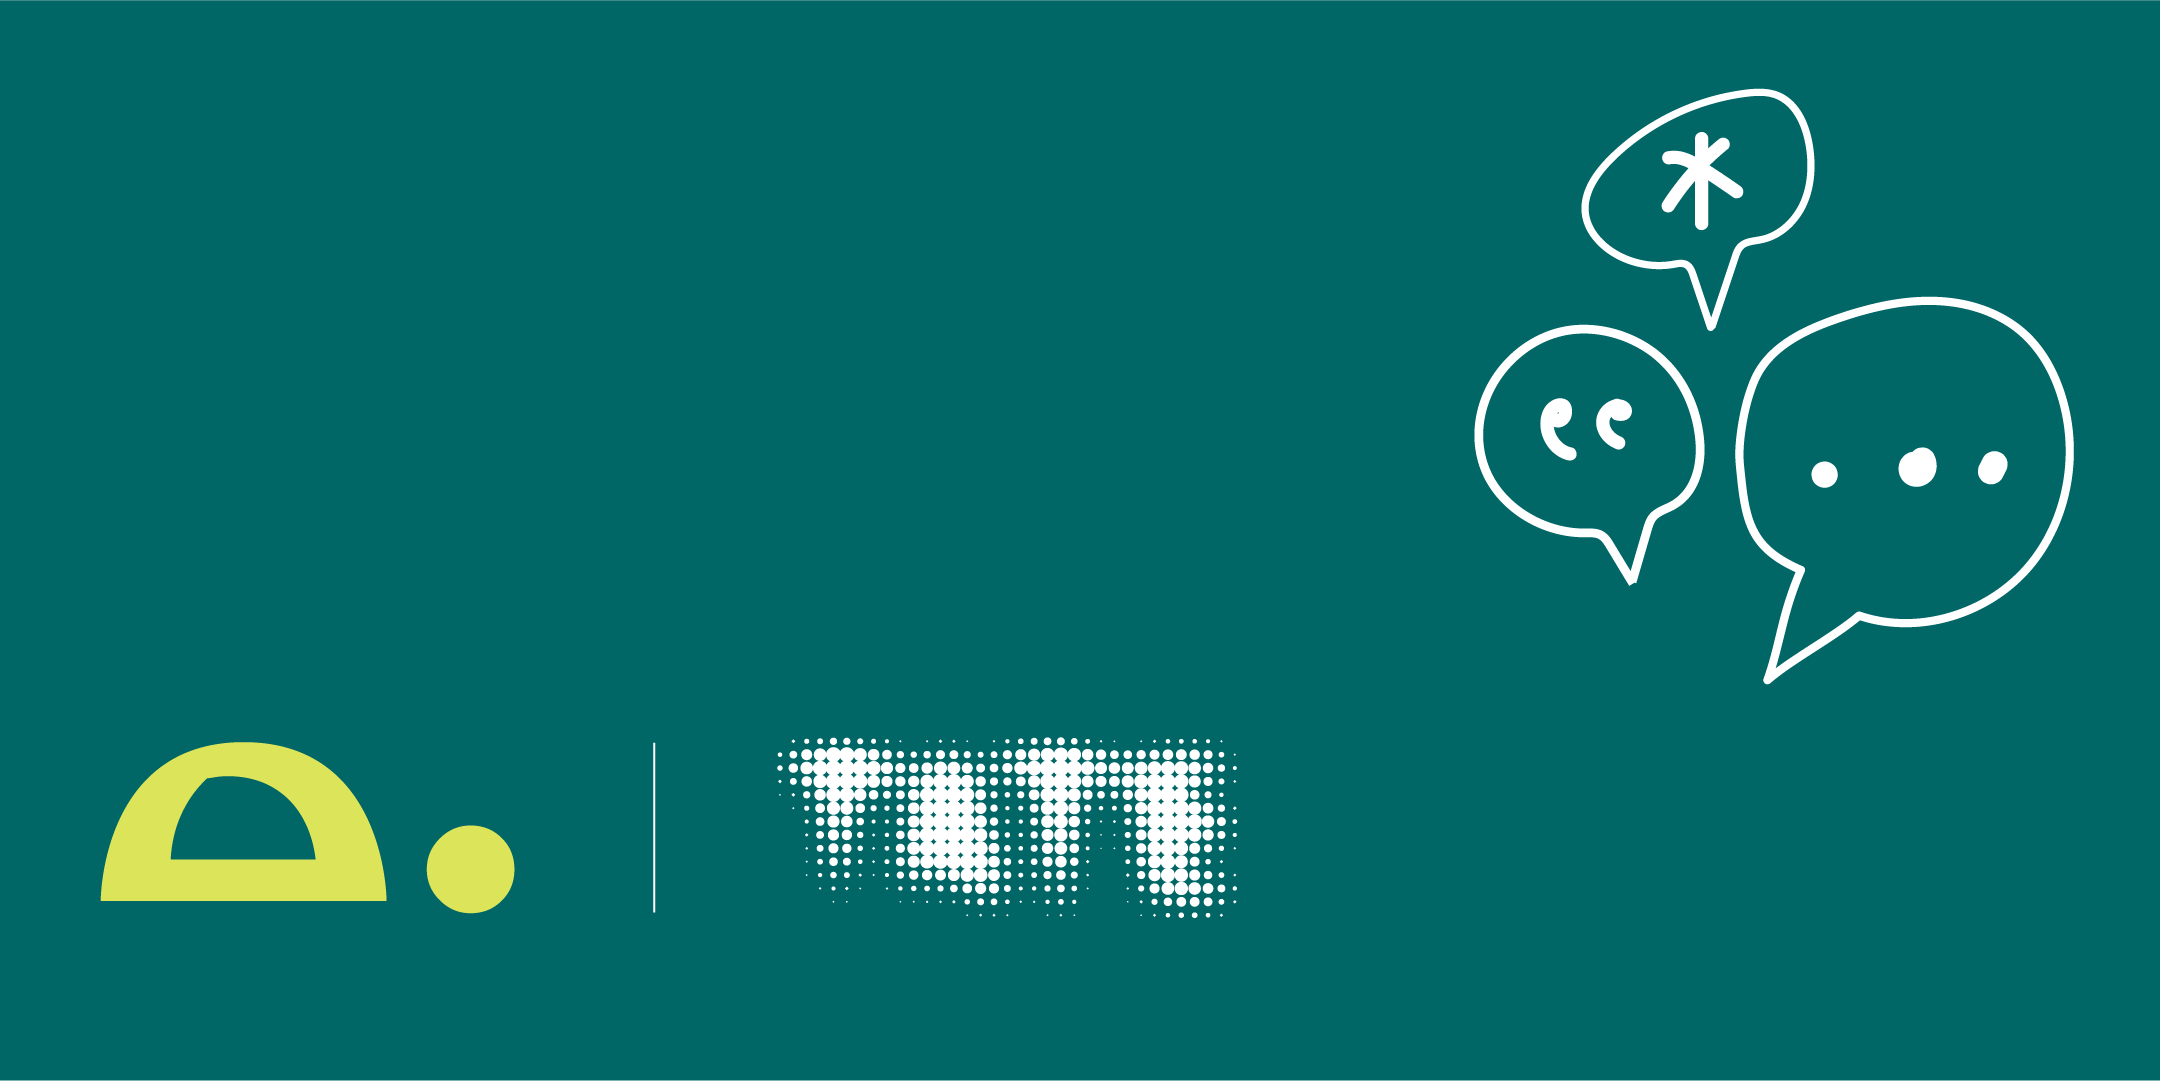 Tortoise @ Tate - What's on your mind? - An open news meeting with the Tortoise editors